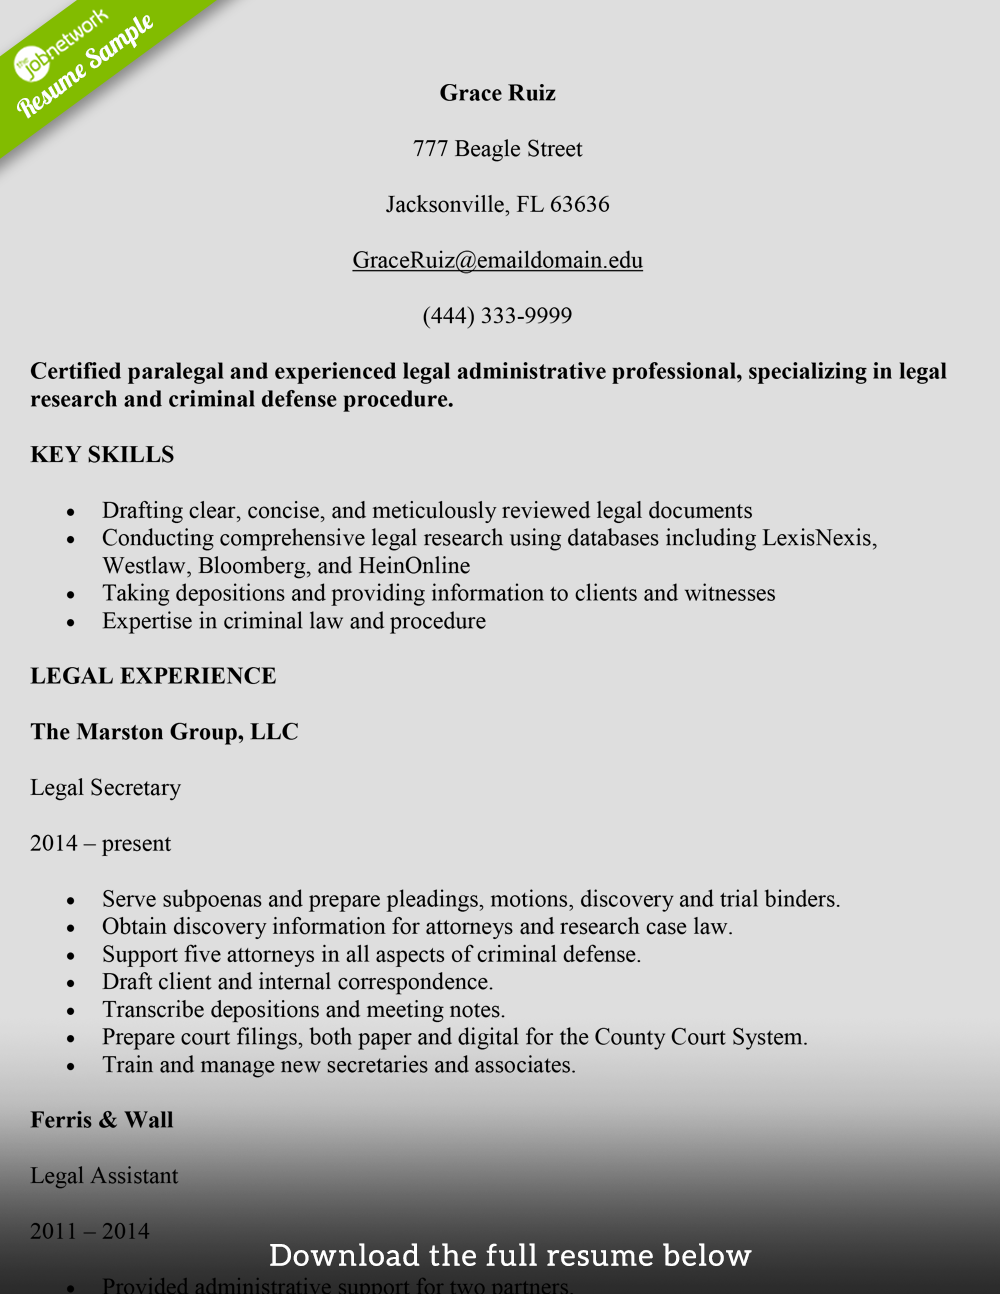 legal-secretary-resume-paralega